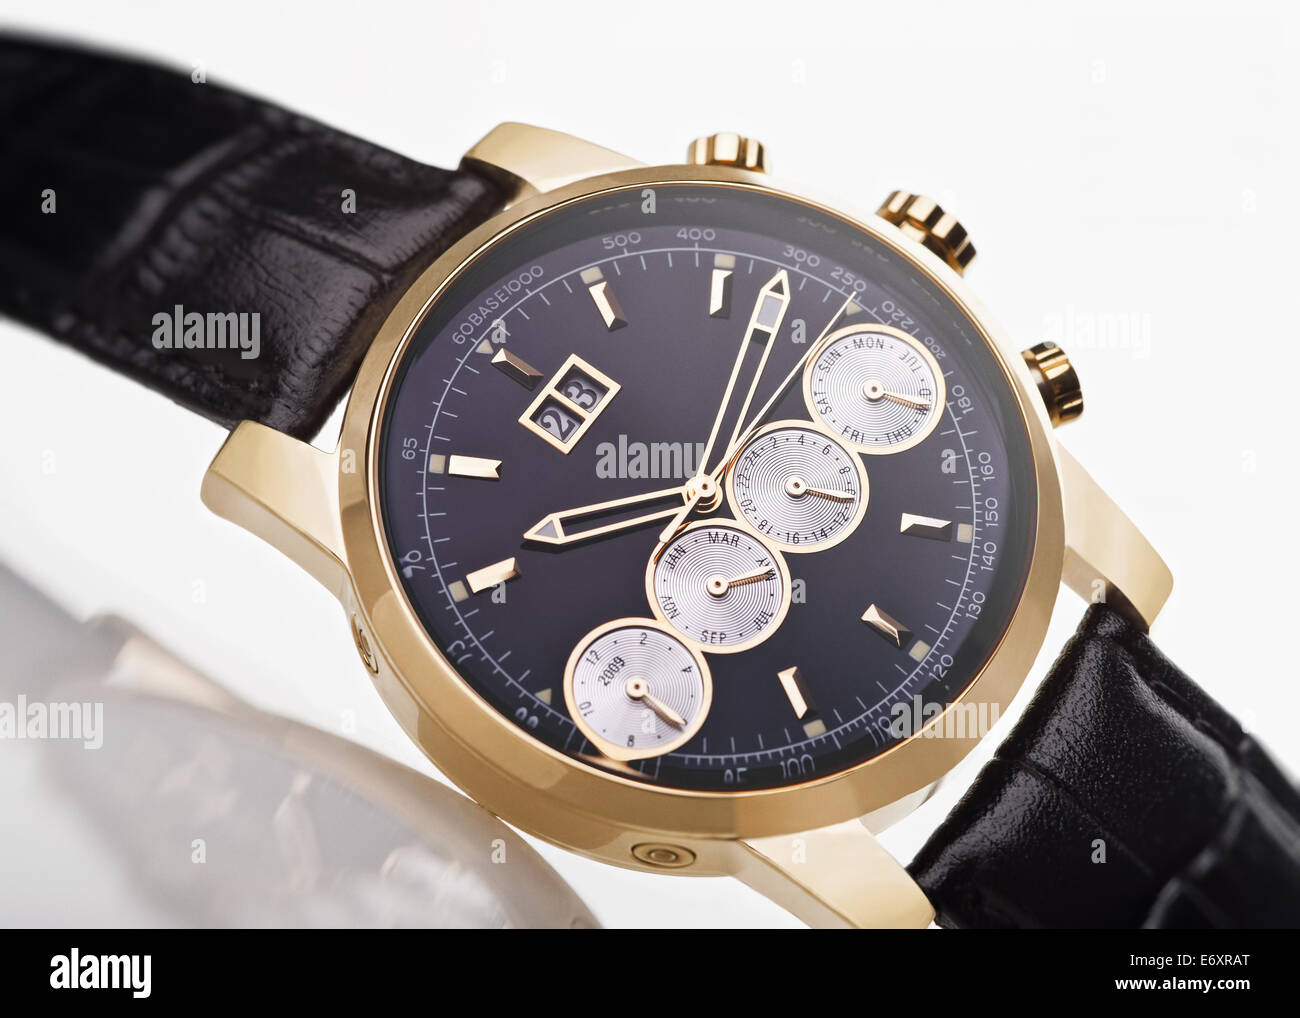 gold men's wristwatch with black leather strap on a white background - Stock Image